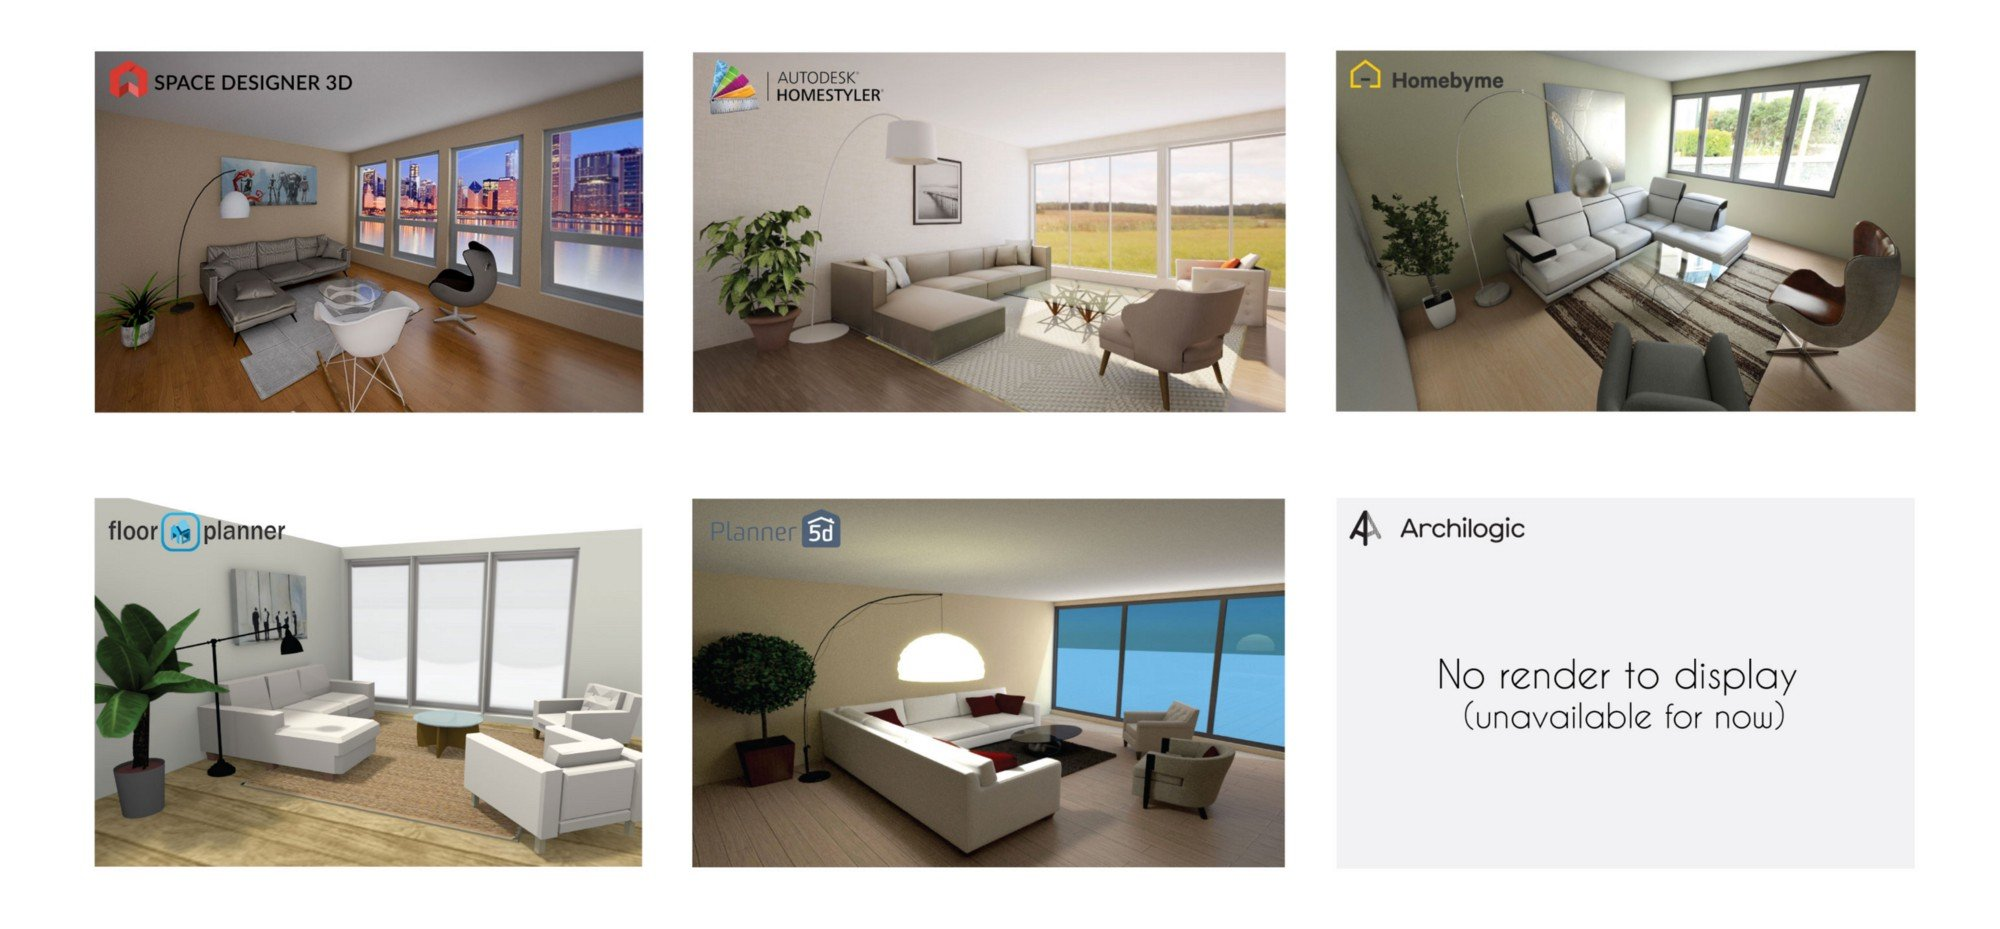 interior design software rendering comparison